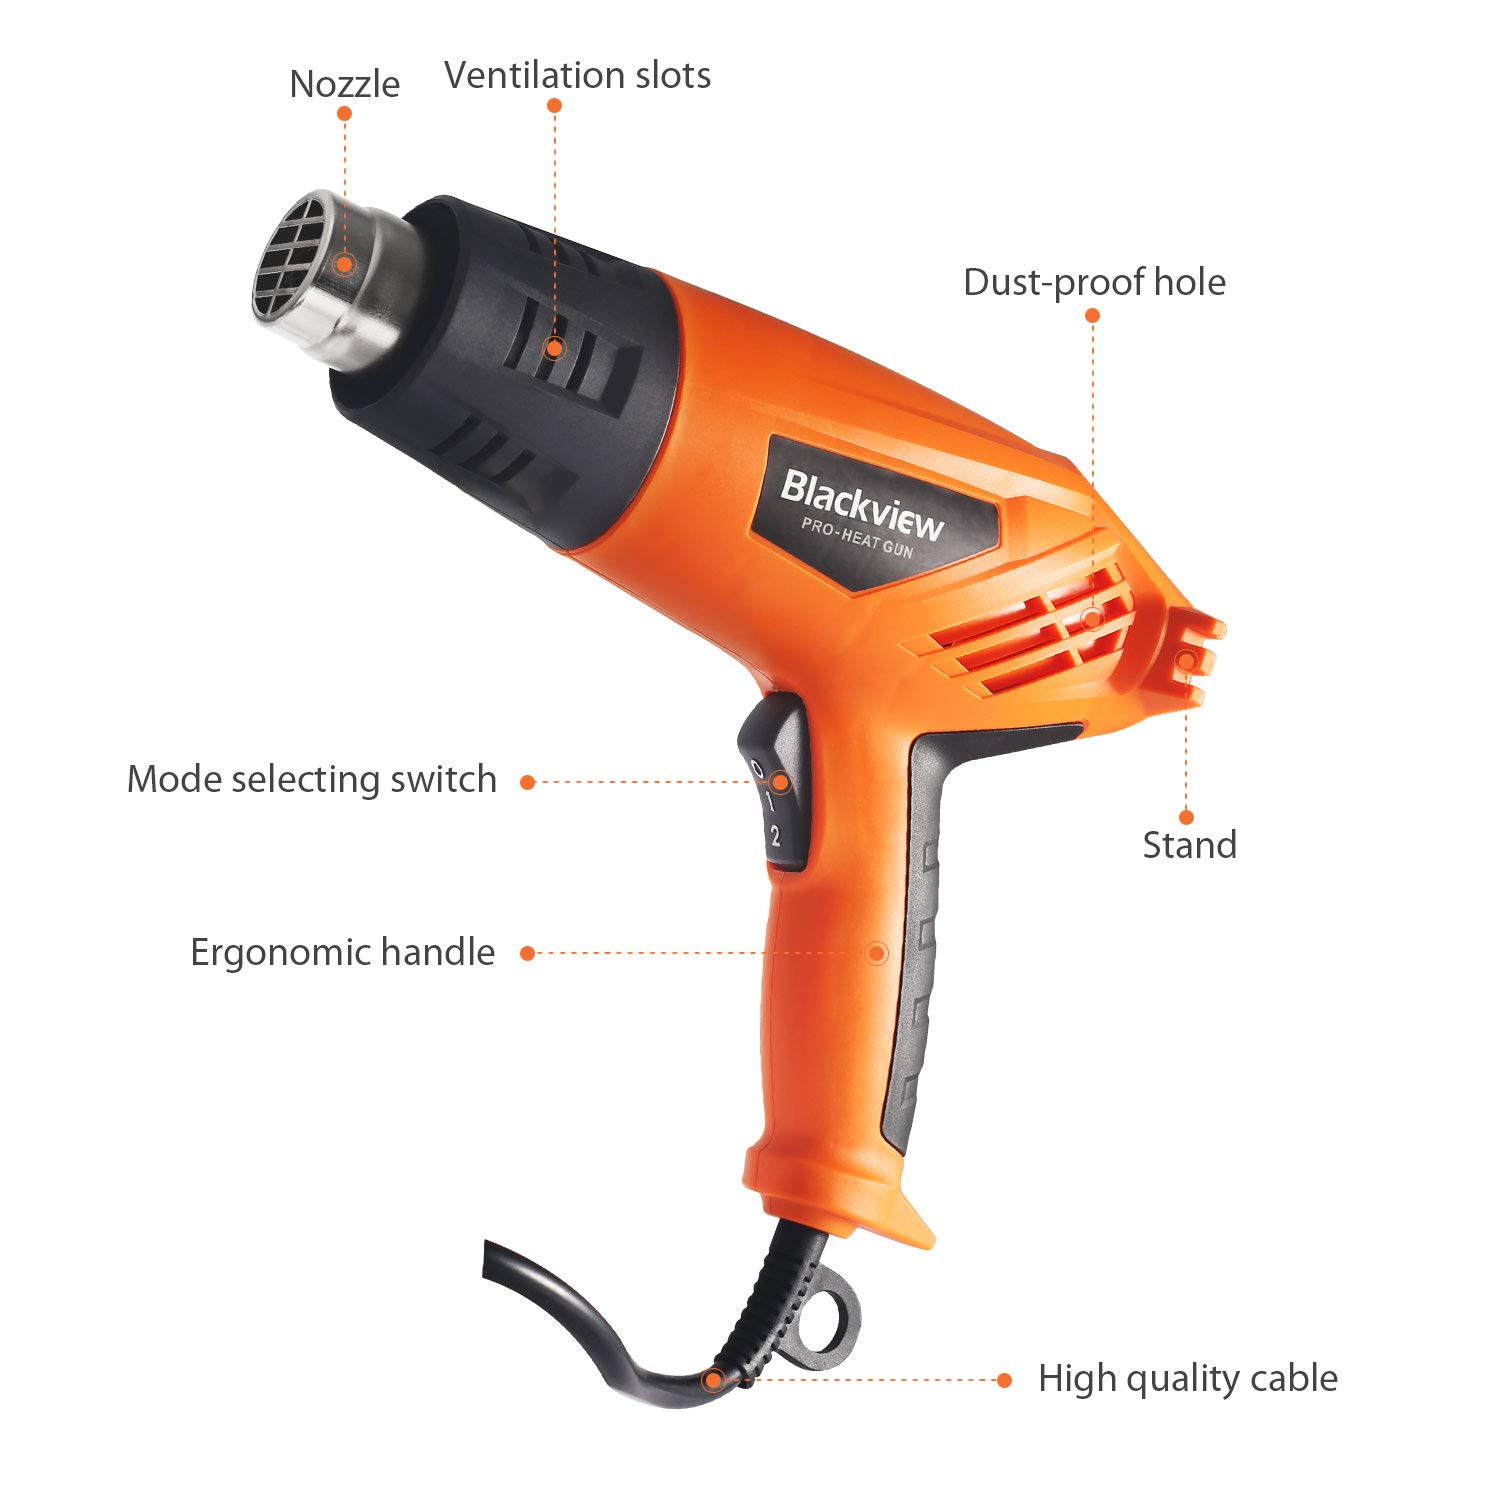 Blackview Heat Gun 1500W Heavy Duty Hot Air Gun with 2-Temp Settings 4 Nozzles 662℉~1022℉(350℃- 550℃)with Overload Protection for Crafts, Shrinking PVC, Stripping Paint, Bending Pipes, Lighting BBQ by Blackview (Image #2)